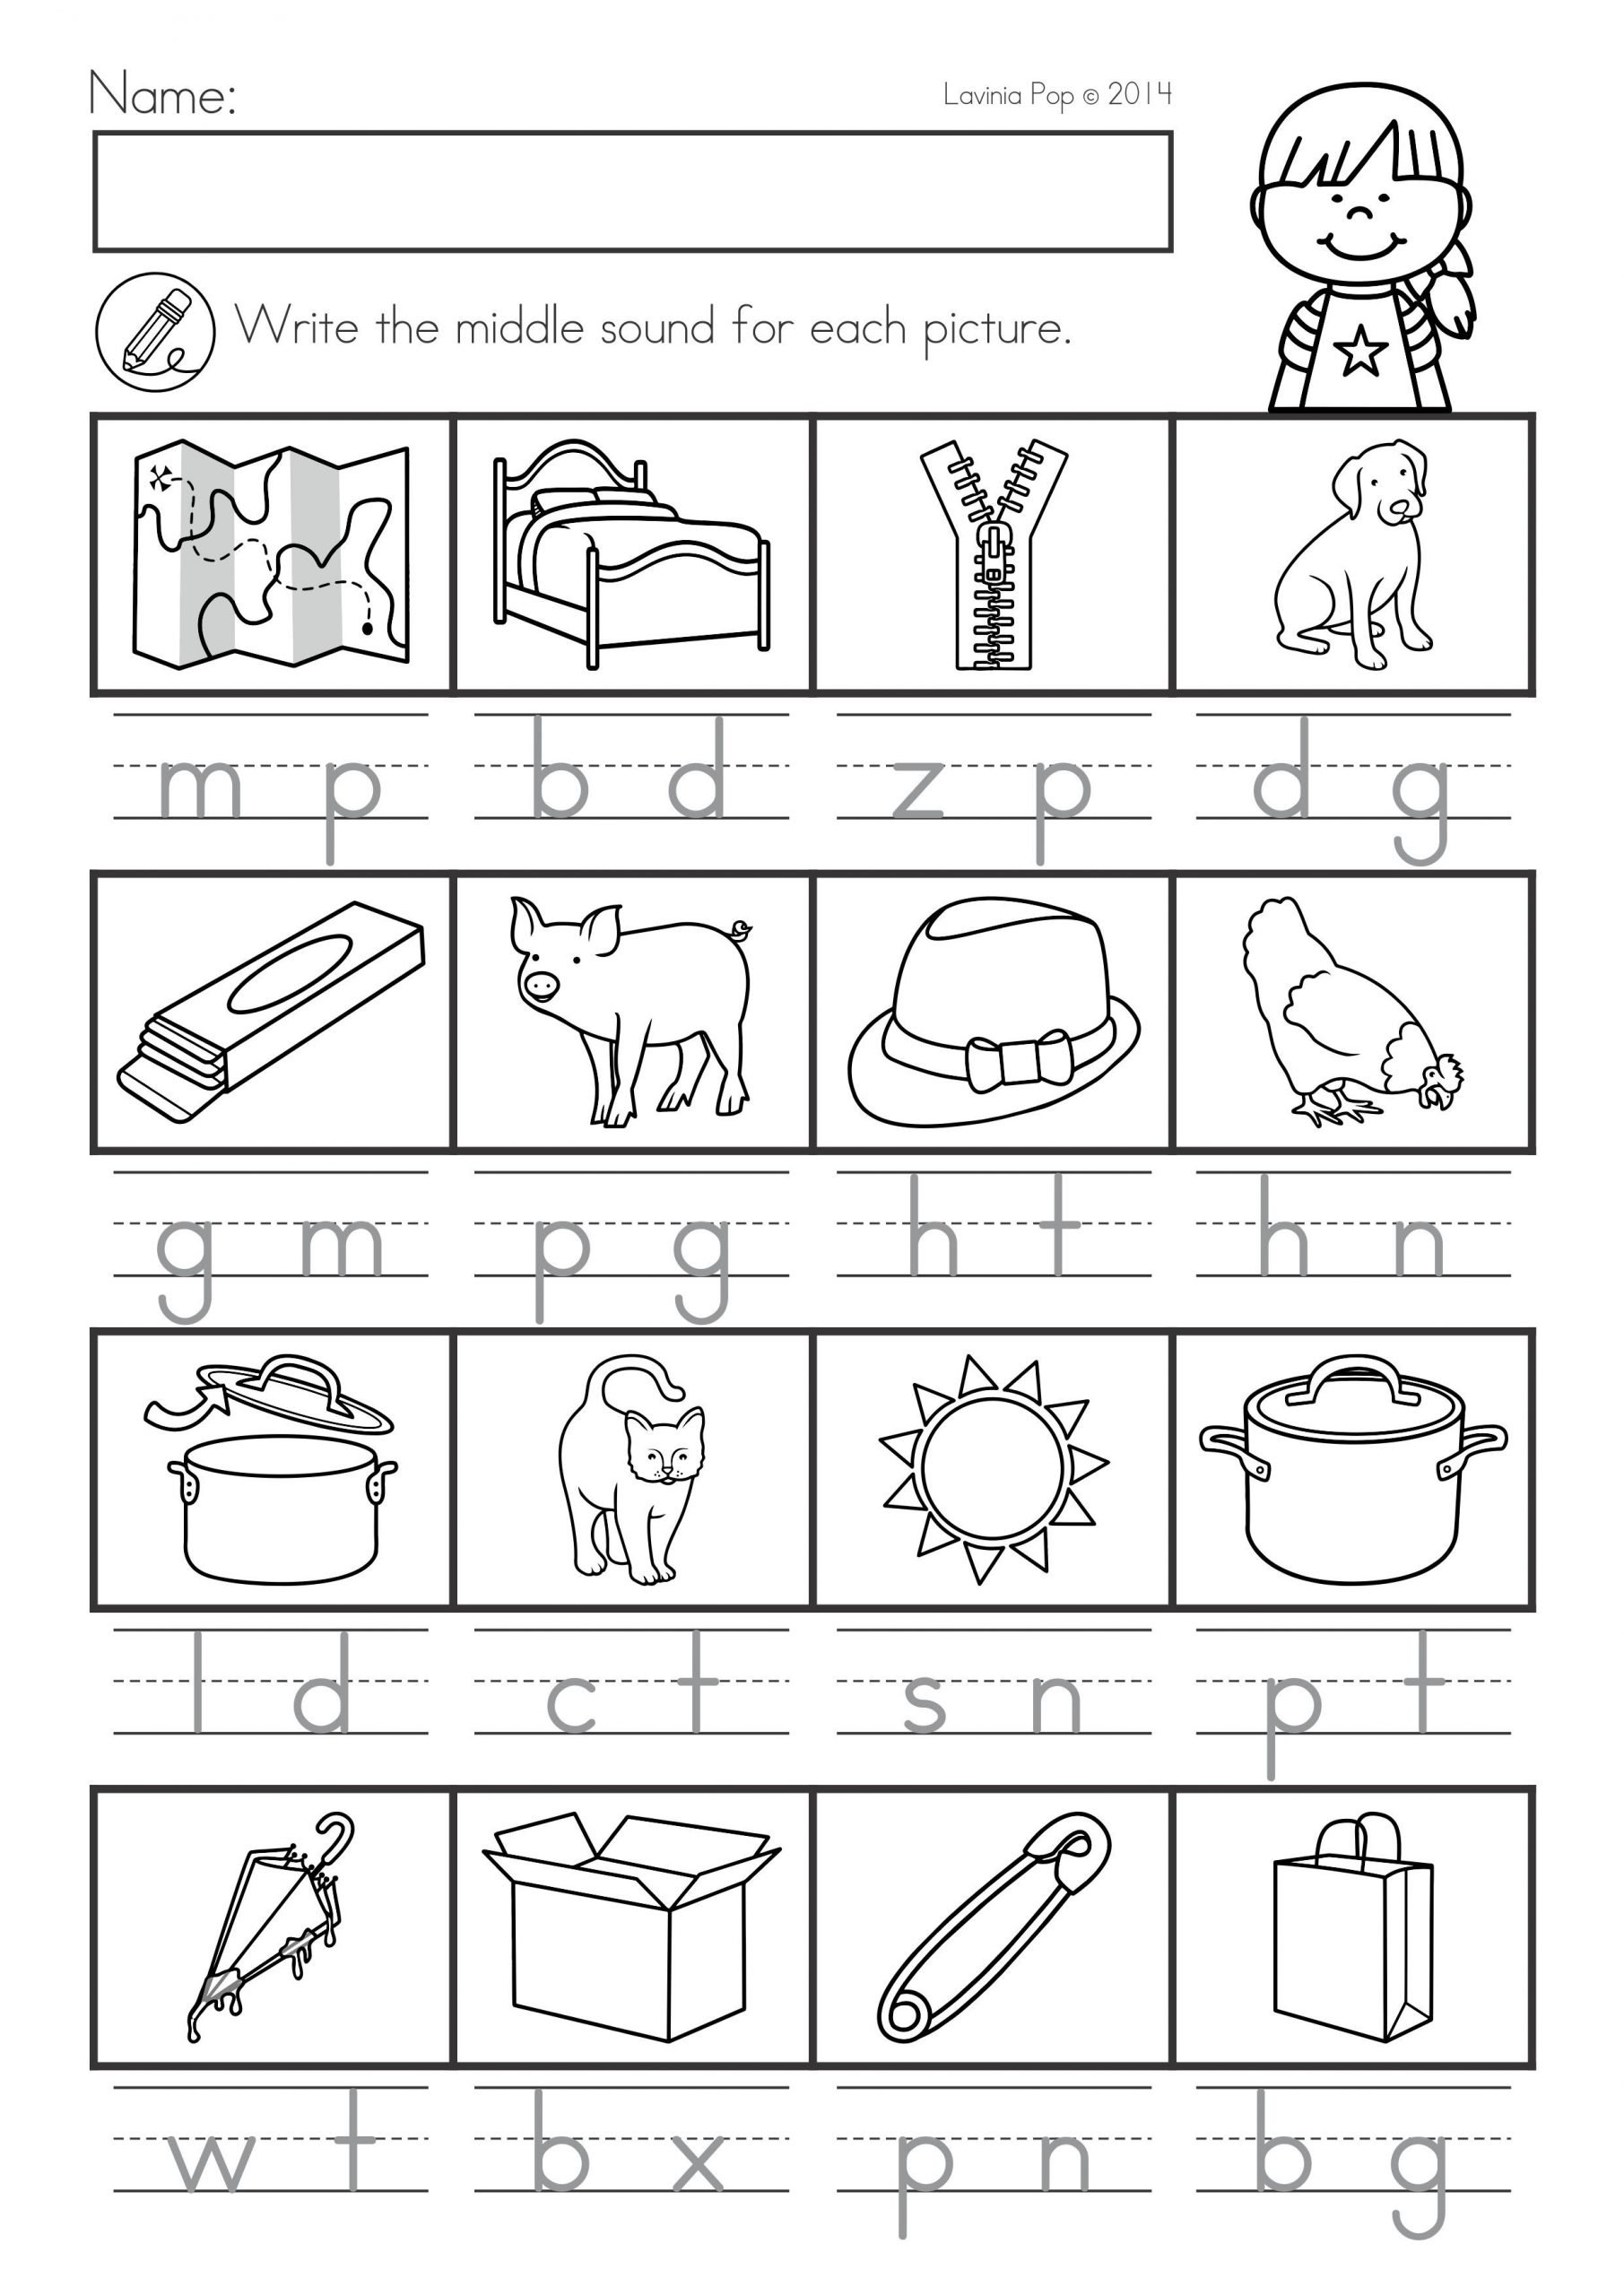 Middle sound Worksheets for Kindergarten Missing sounds Worksheets